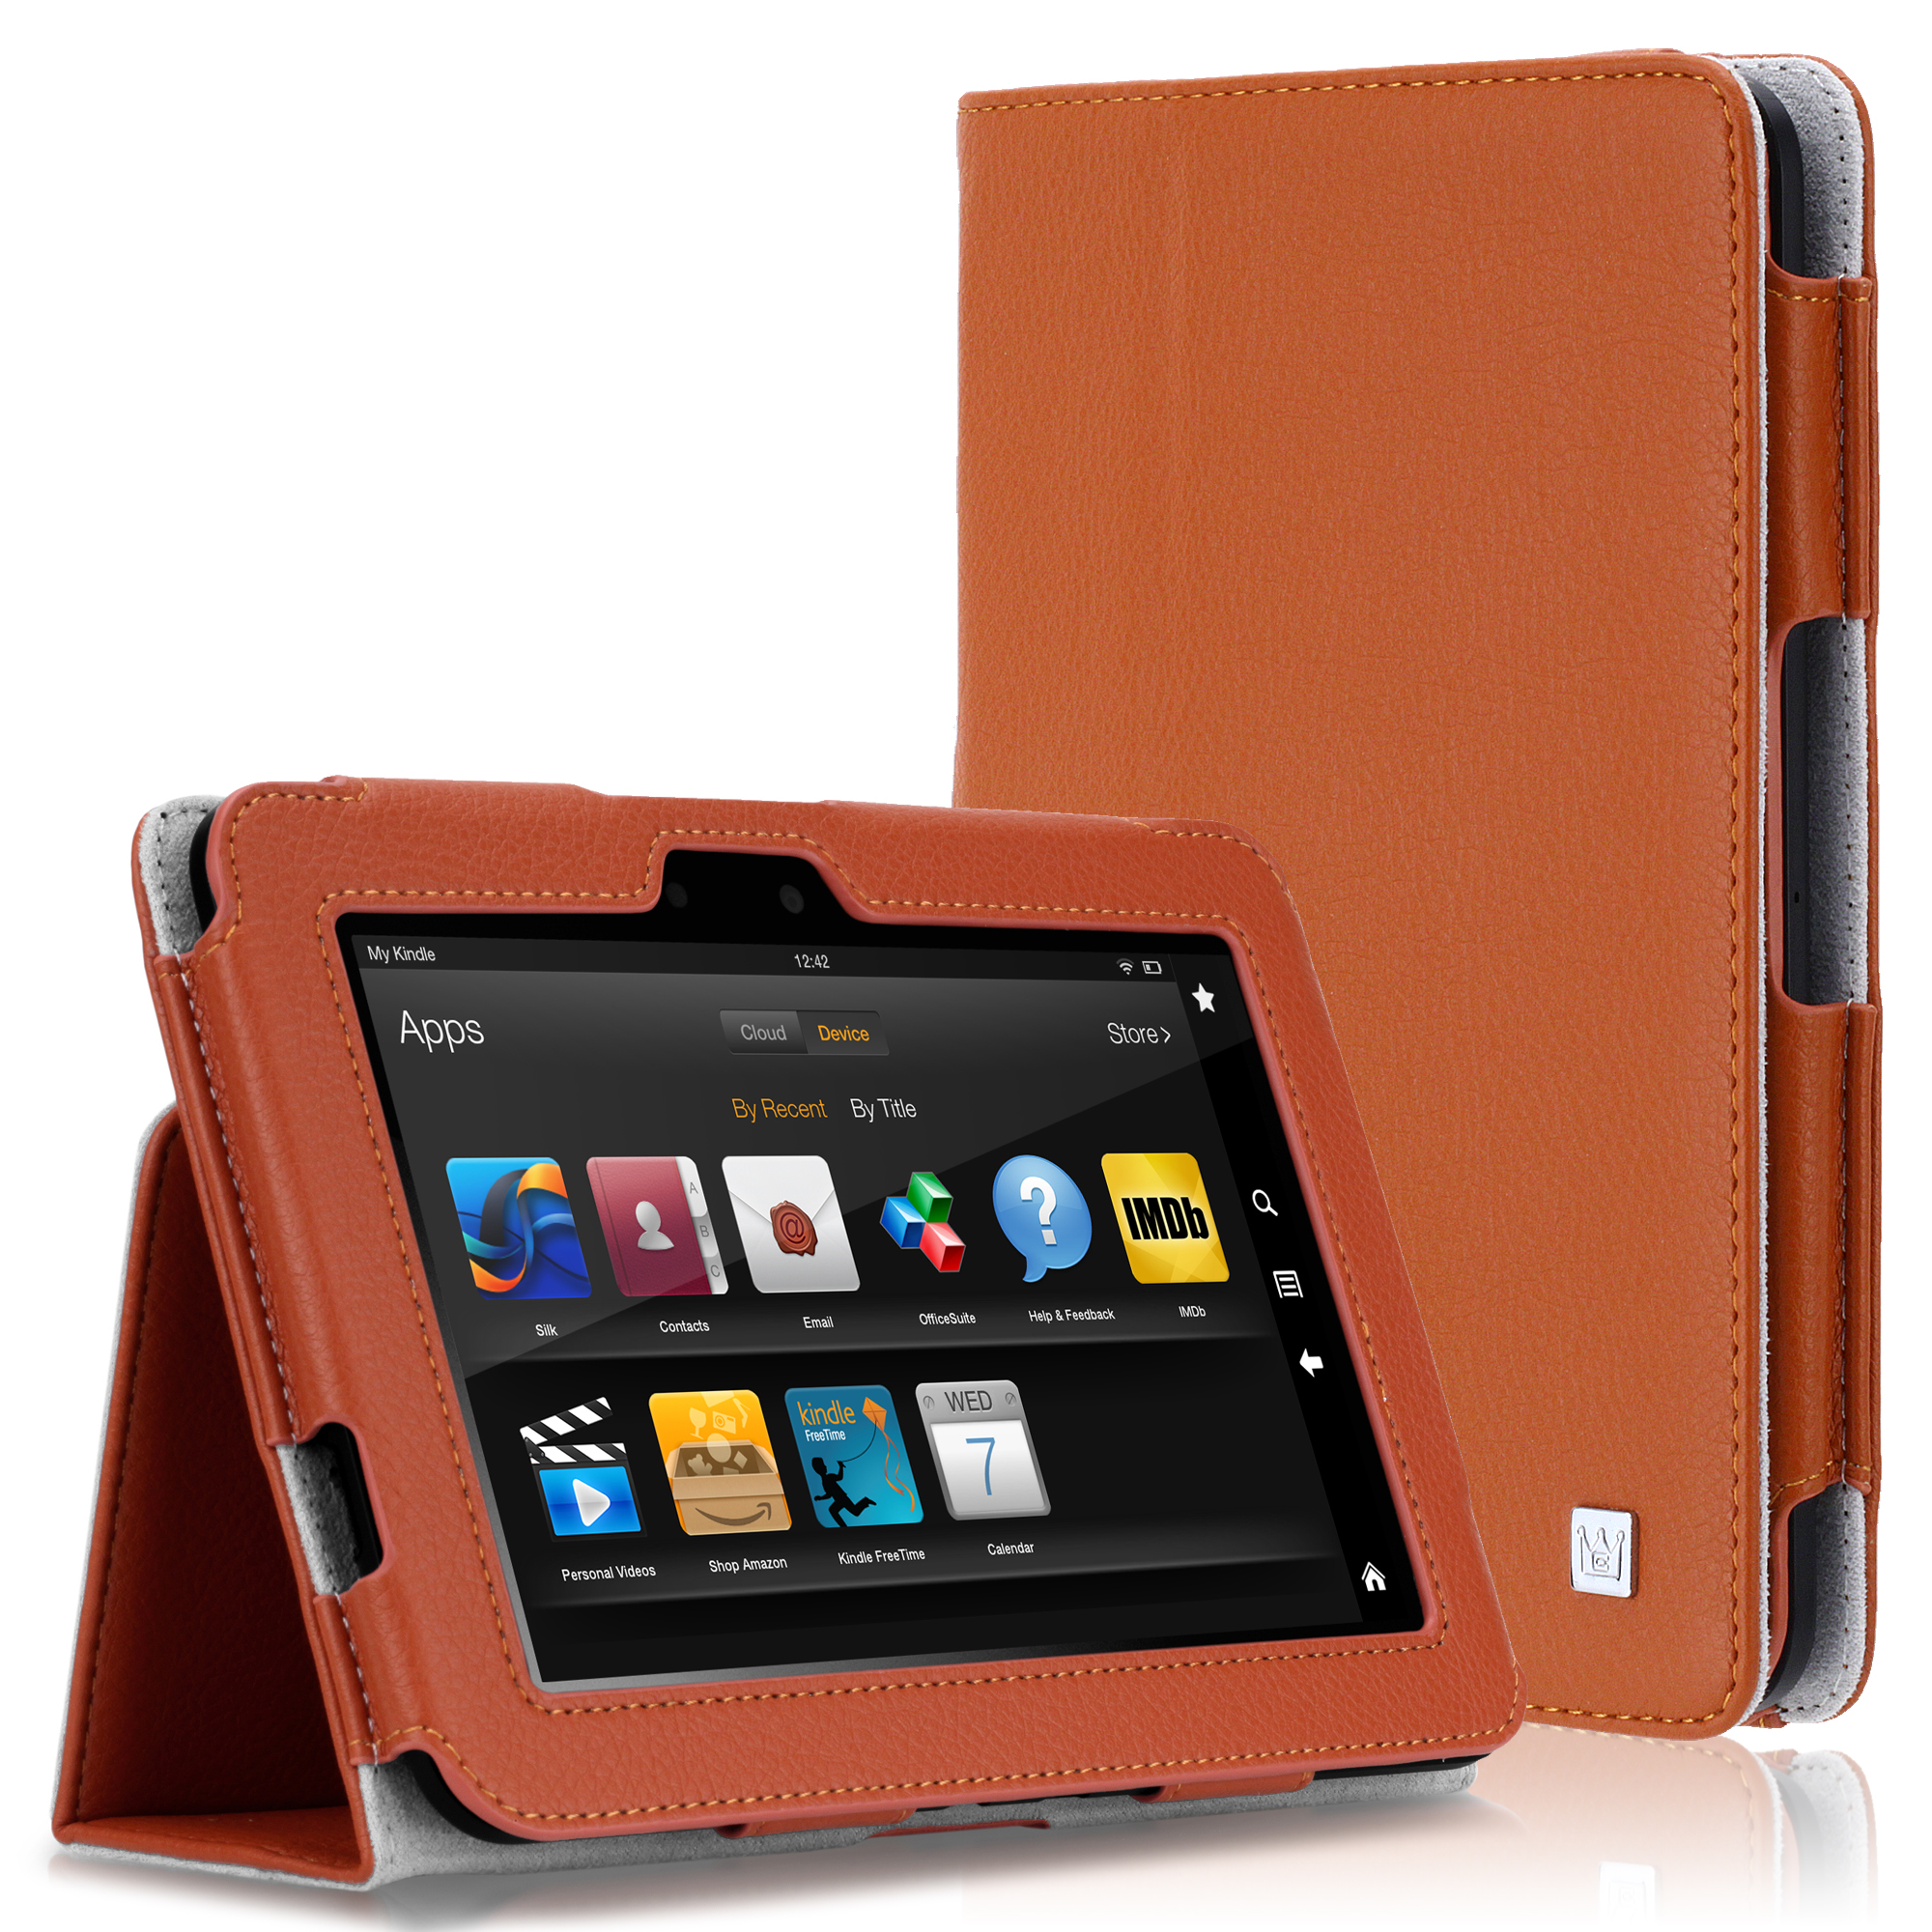 CaseCrown Bold Standby Case (Orange) for Amazon Kindle Fire HD 8.9 Inch (Built-in magnet for sleep / wake feature)